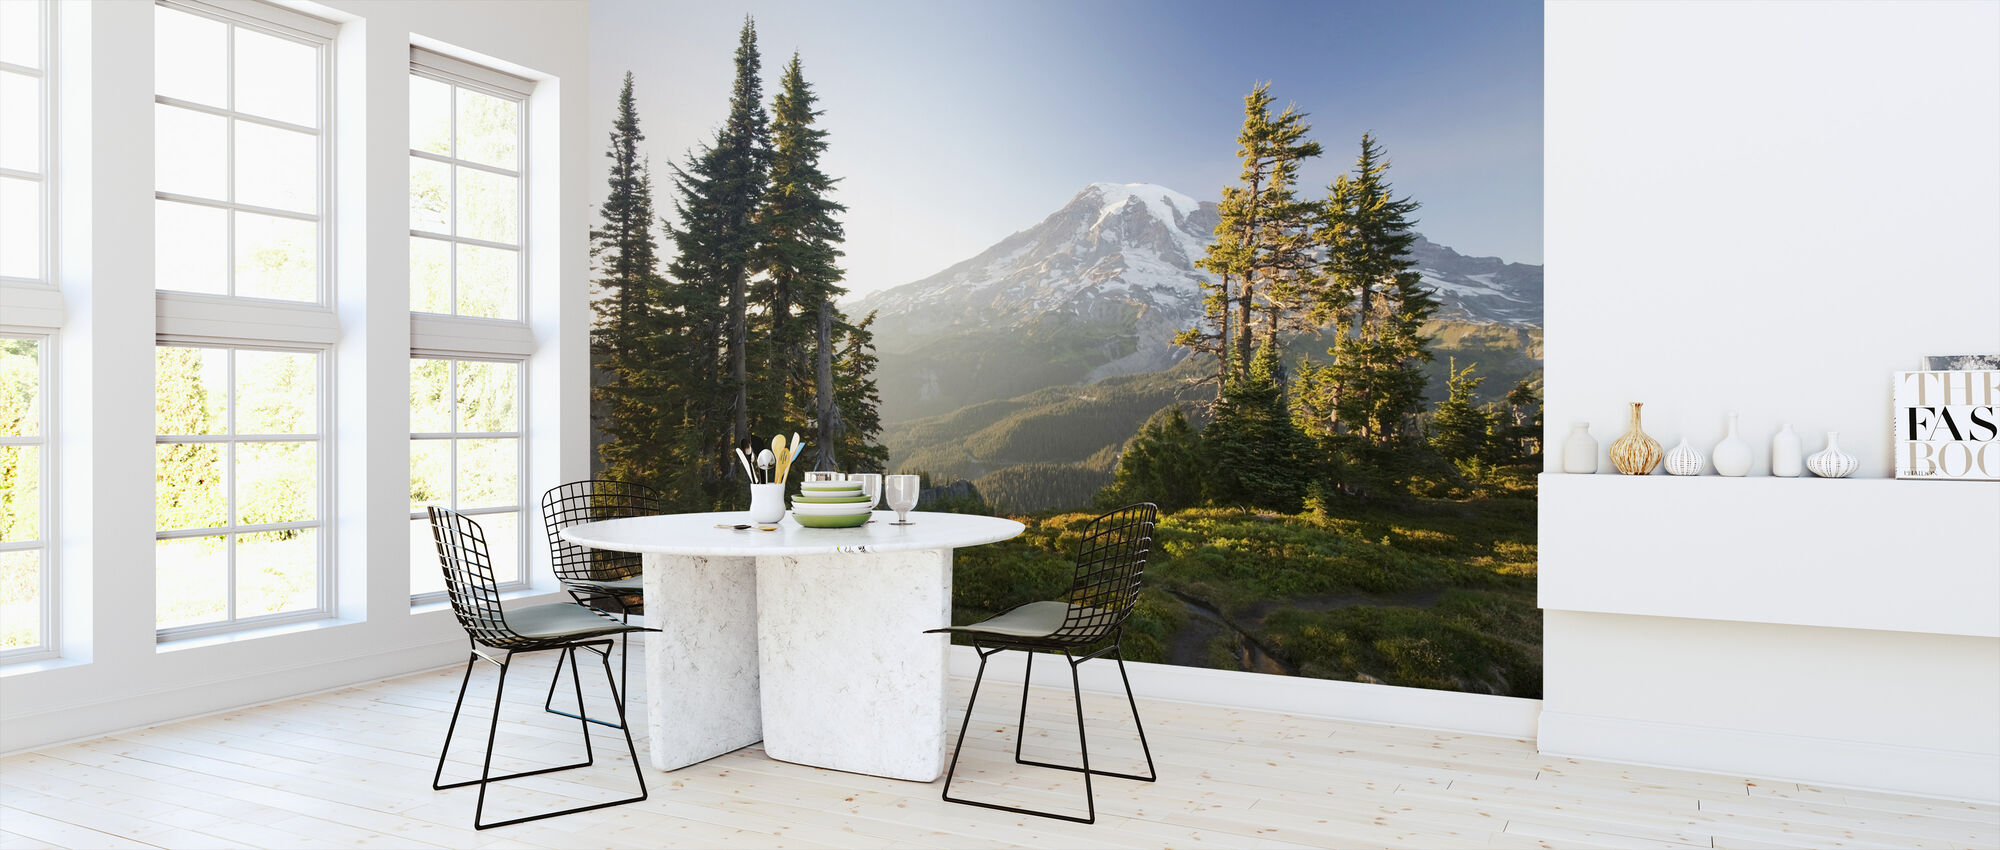 Mount Rainier and Alpine Forest at Sunset - Wallpaper - Kitchen